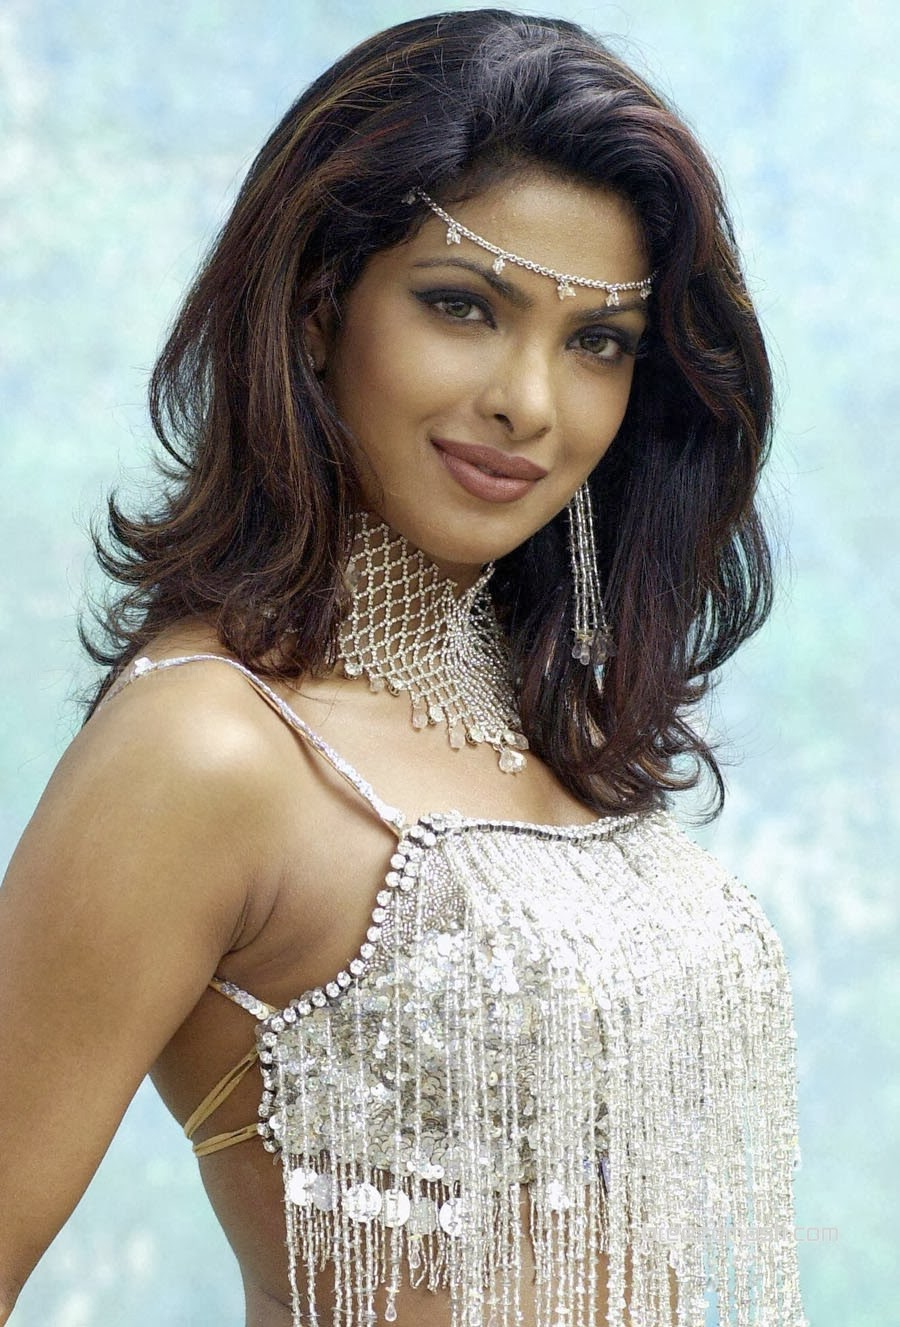 Priyanka Chopra Ki Sexy Photo Hd